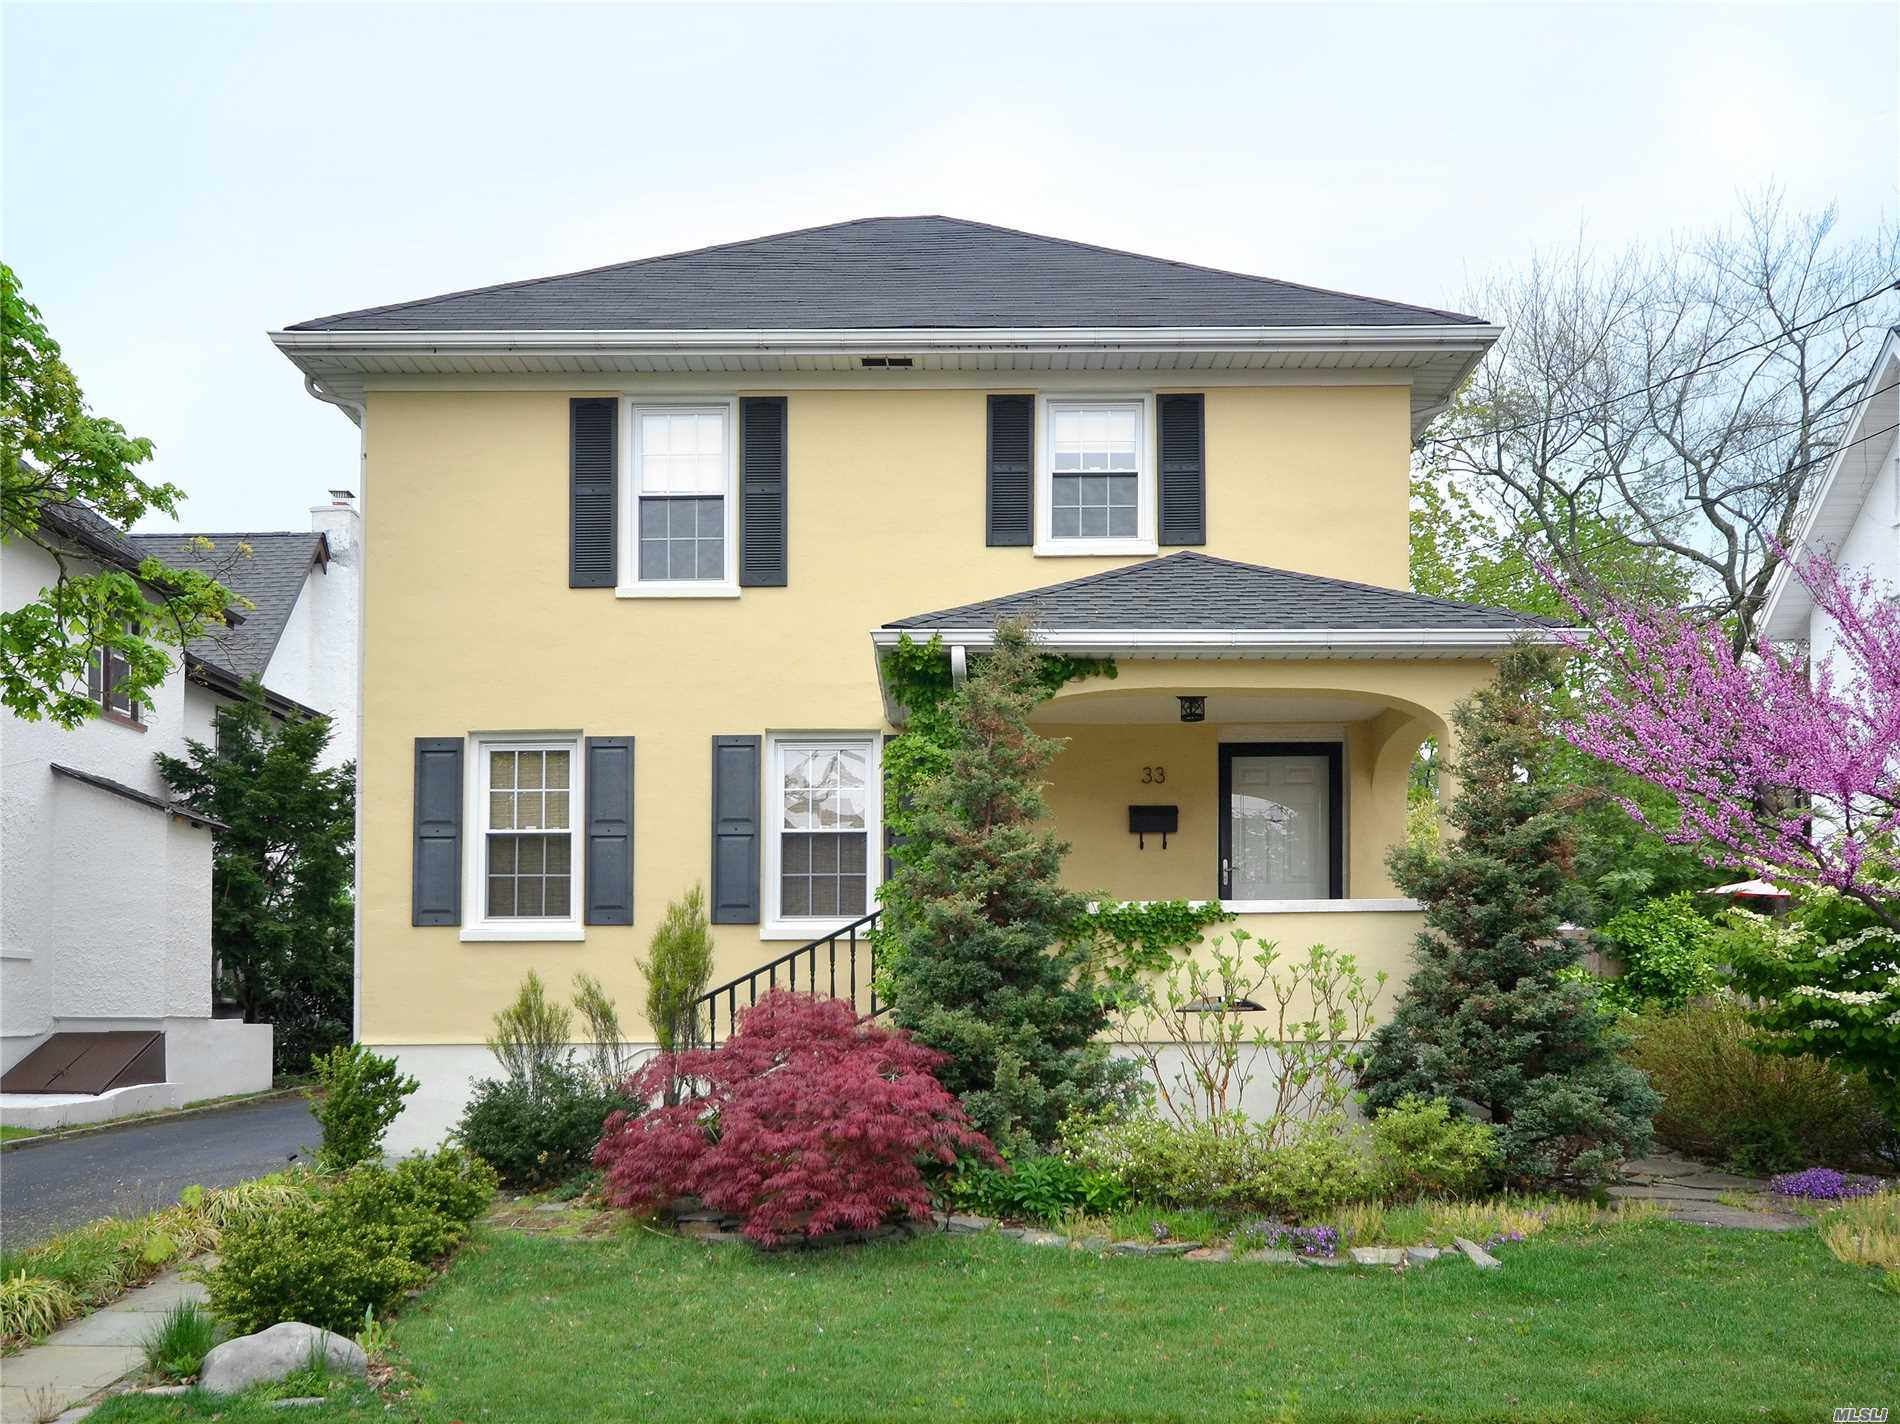 Beautiful Vintage Home Totally Redone, Set In A Beautiful Neighborhood.  Long Driveway With 2 Car Garage.